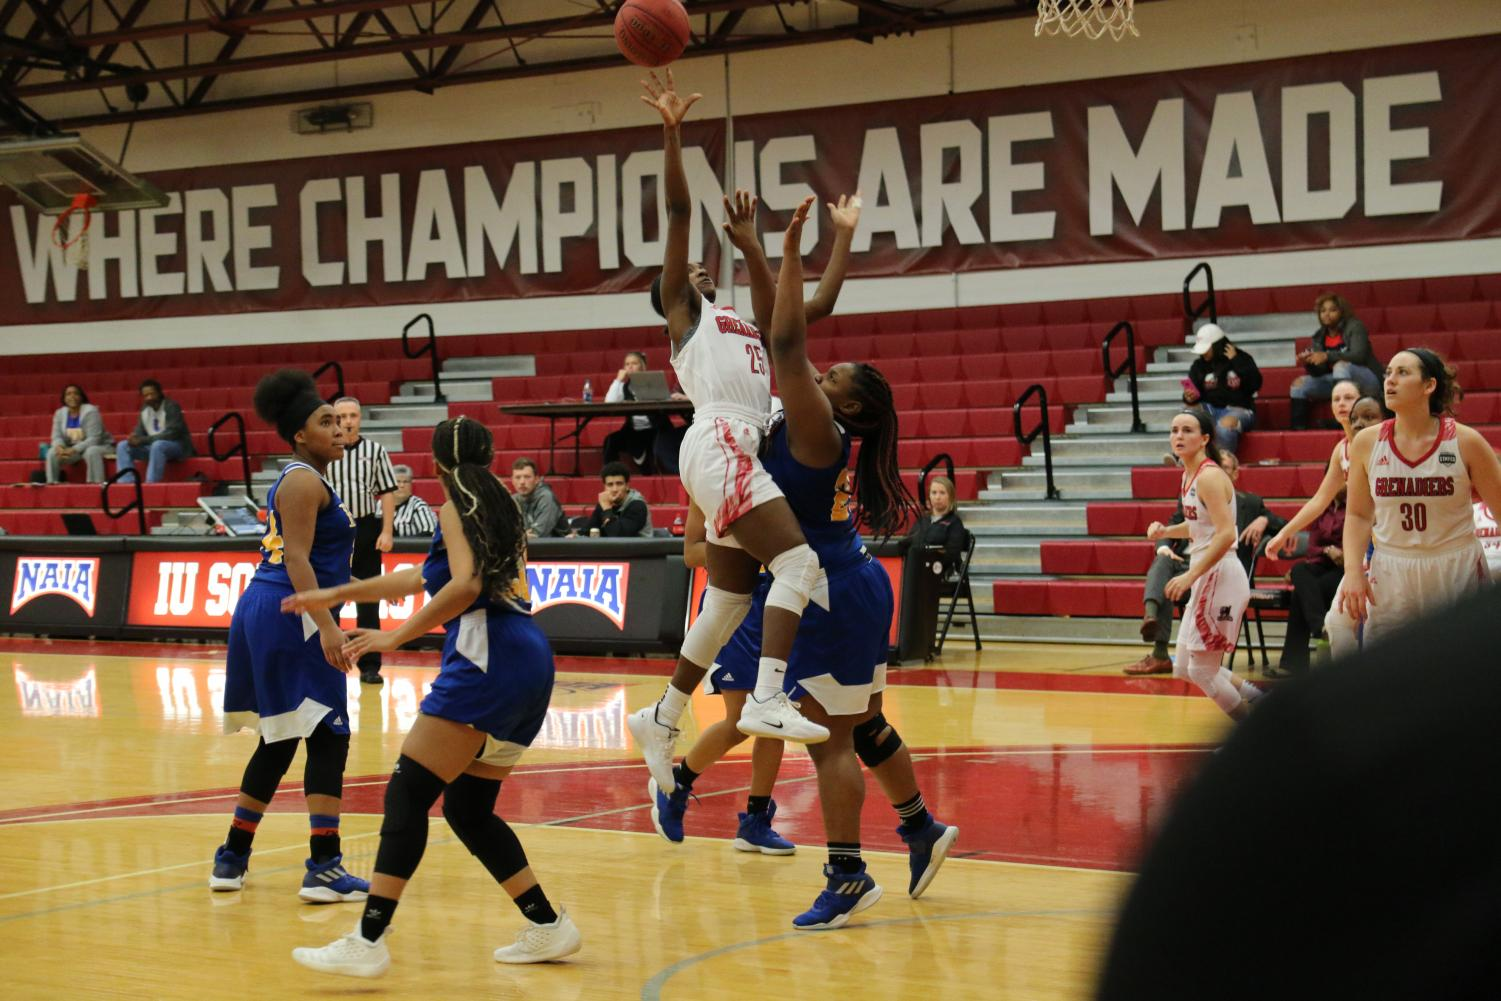 Junior guard Aaliyah Bell drives and rises up for a layup attempt in the women's 100-54 Homecoming win against Fisk University (Tenn.).